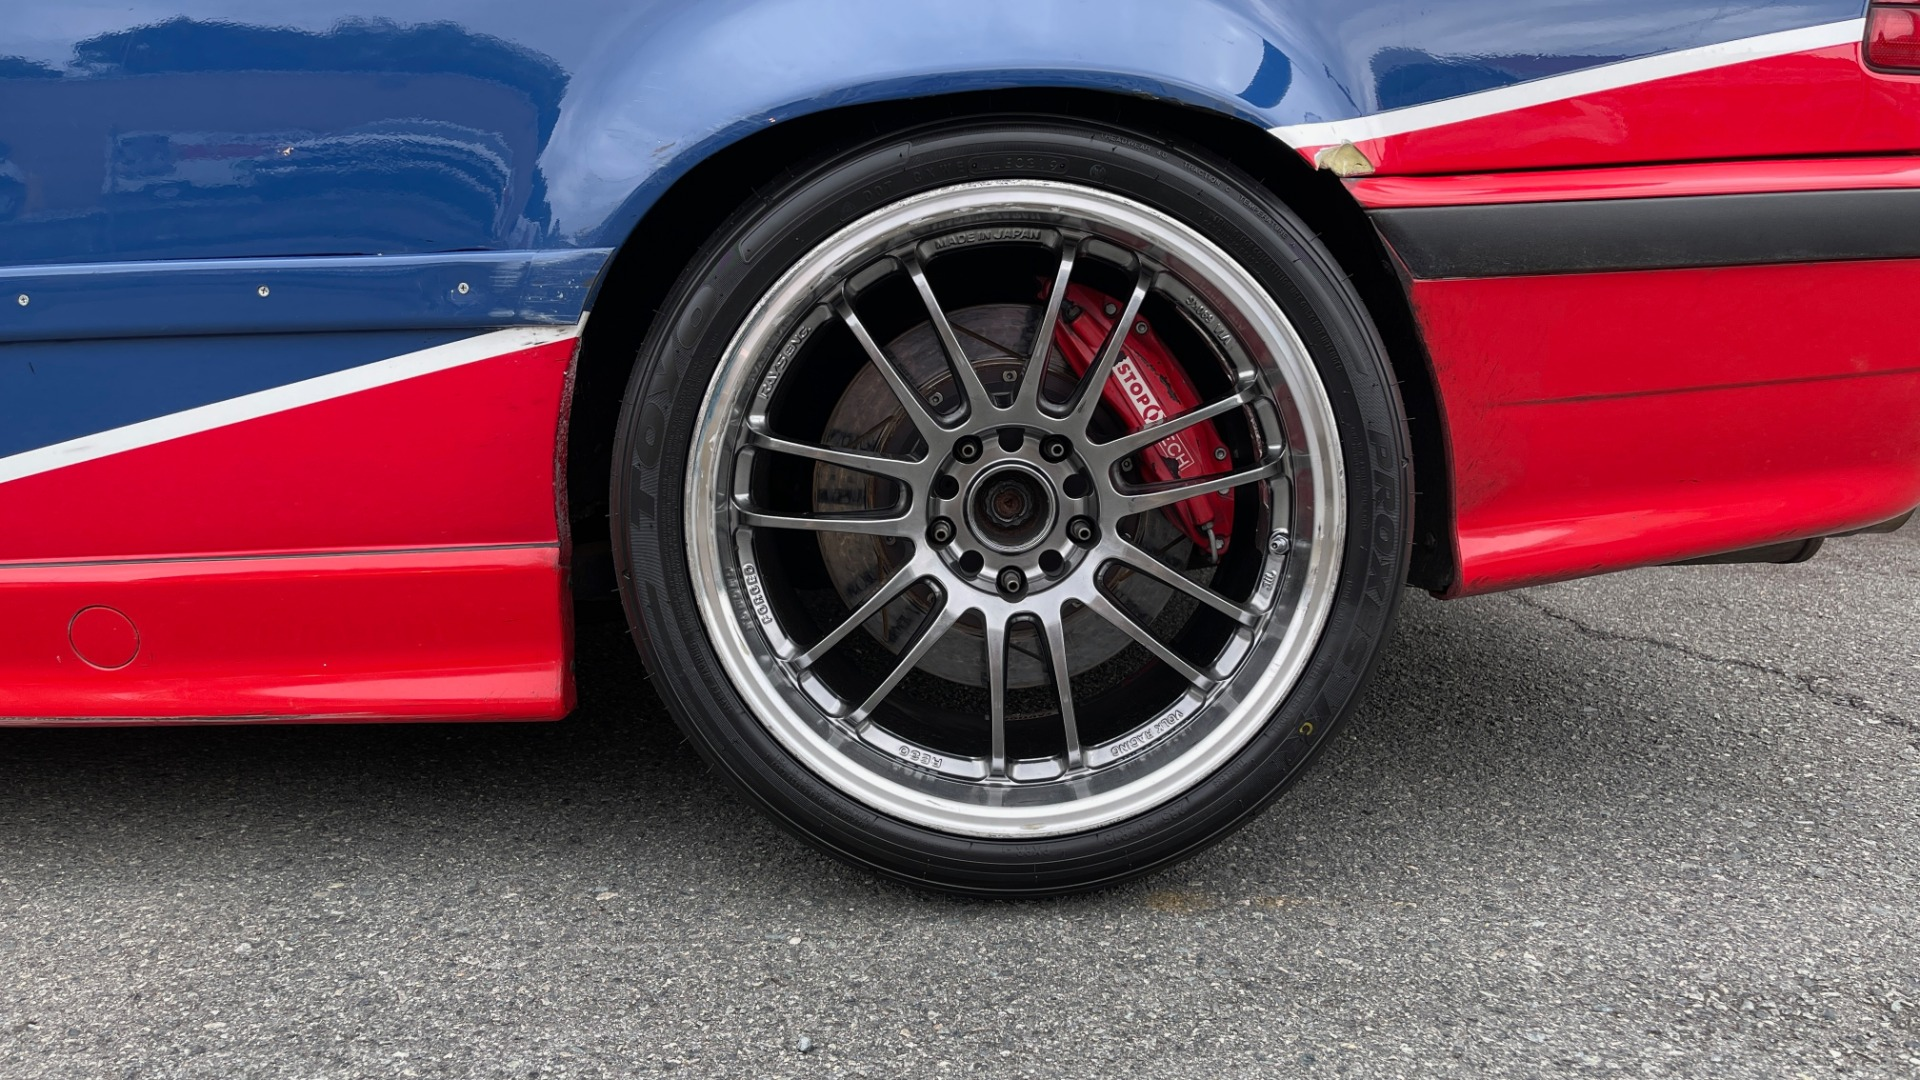 Used 1996 BMW 3-SERIES M3 TRACK CAR / 5-SPD / MANUAL / FULL CAGE / CARBON FIBER WING for sale $47,995 at Formula Imports in Charlotte NC 28227 14